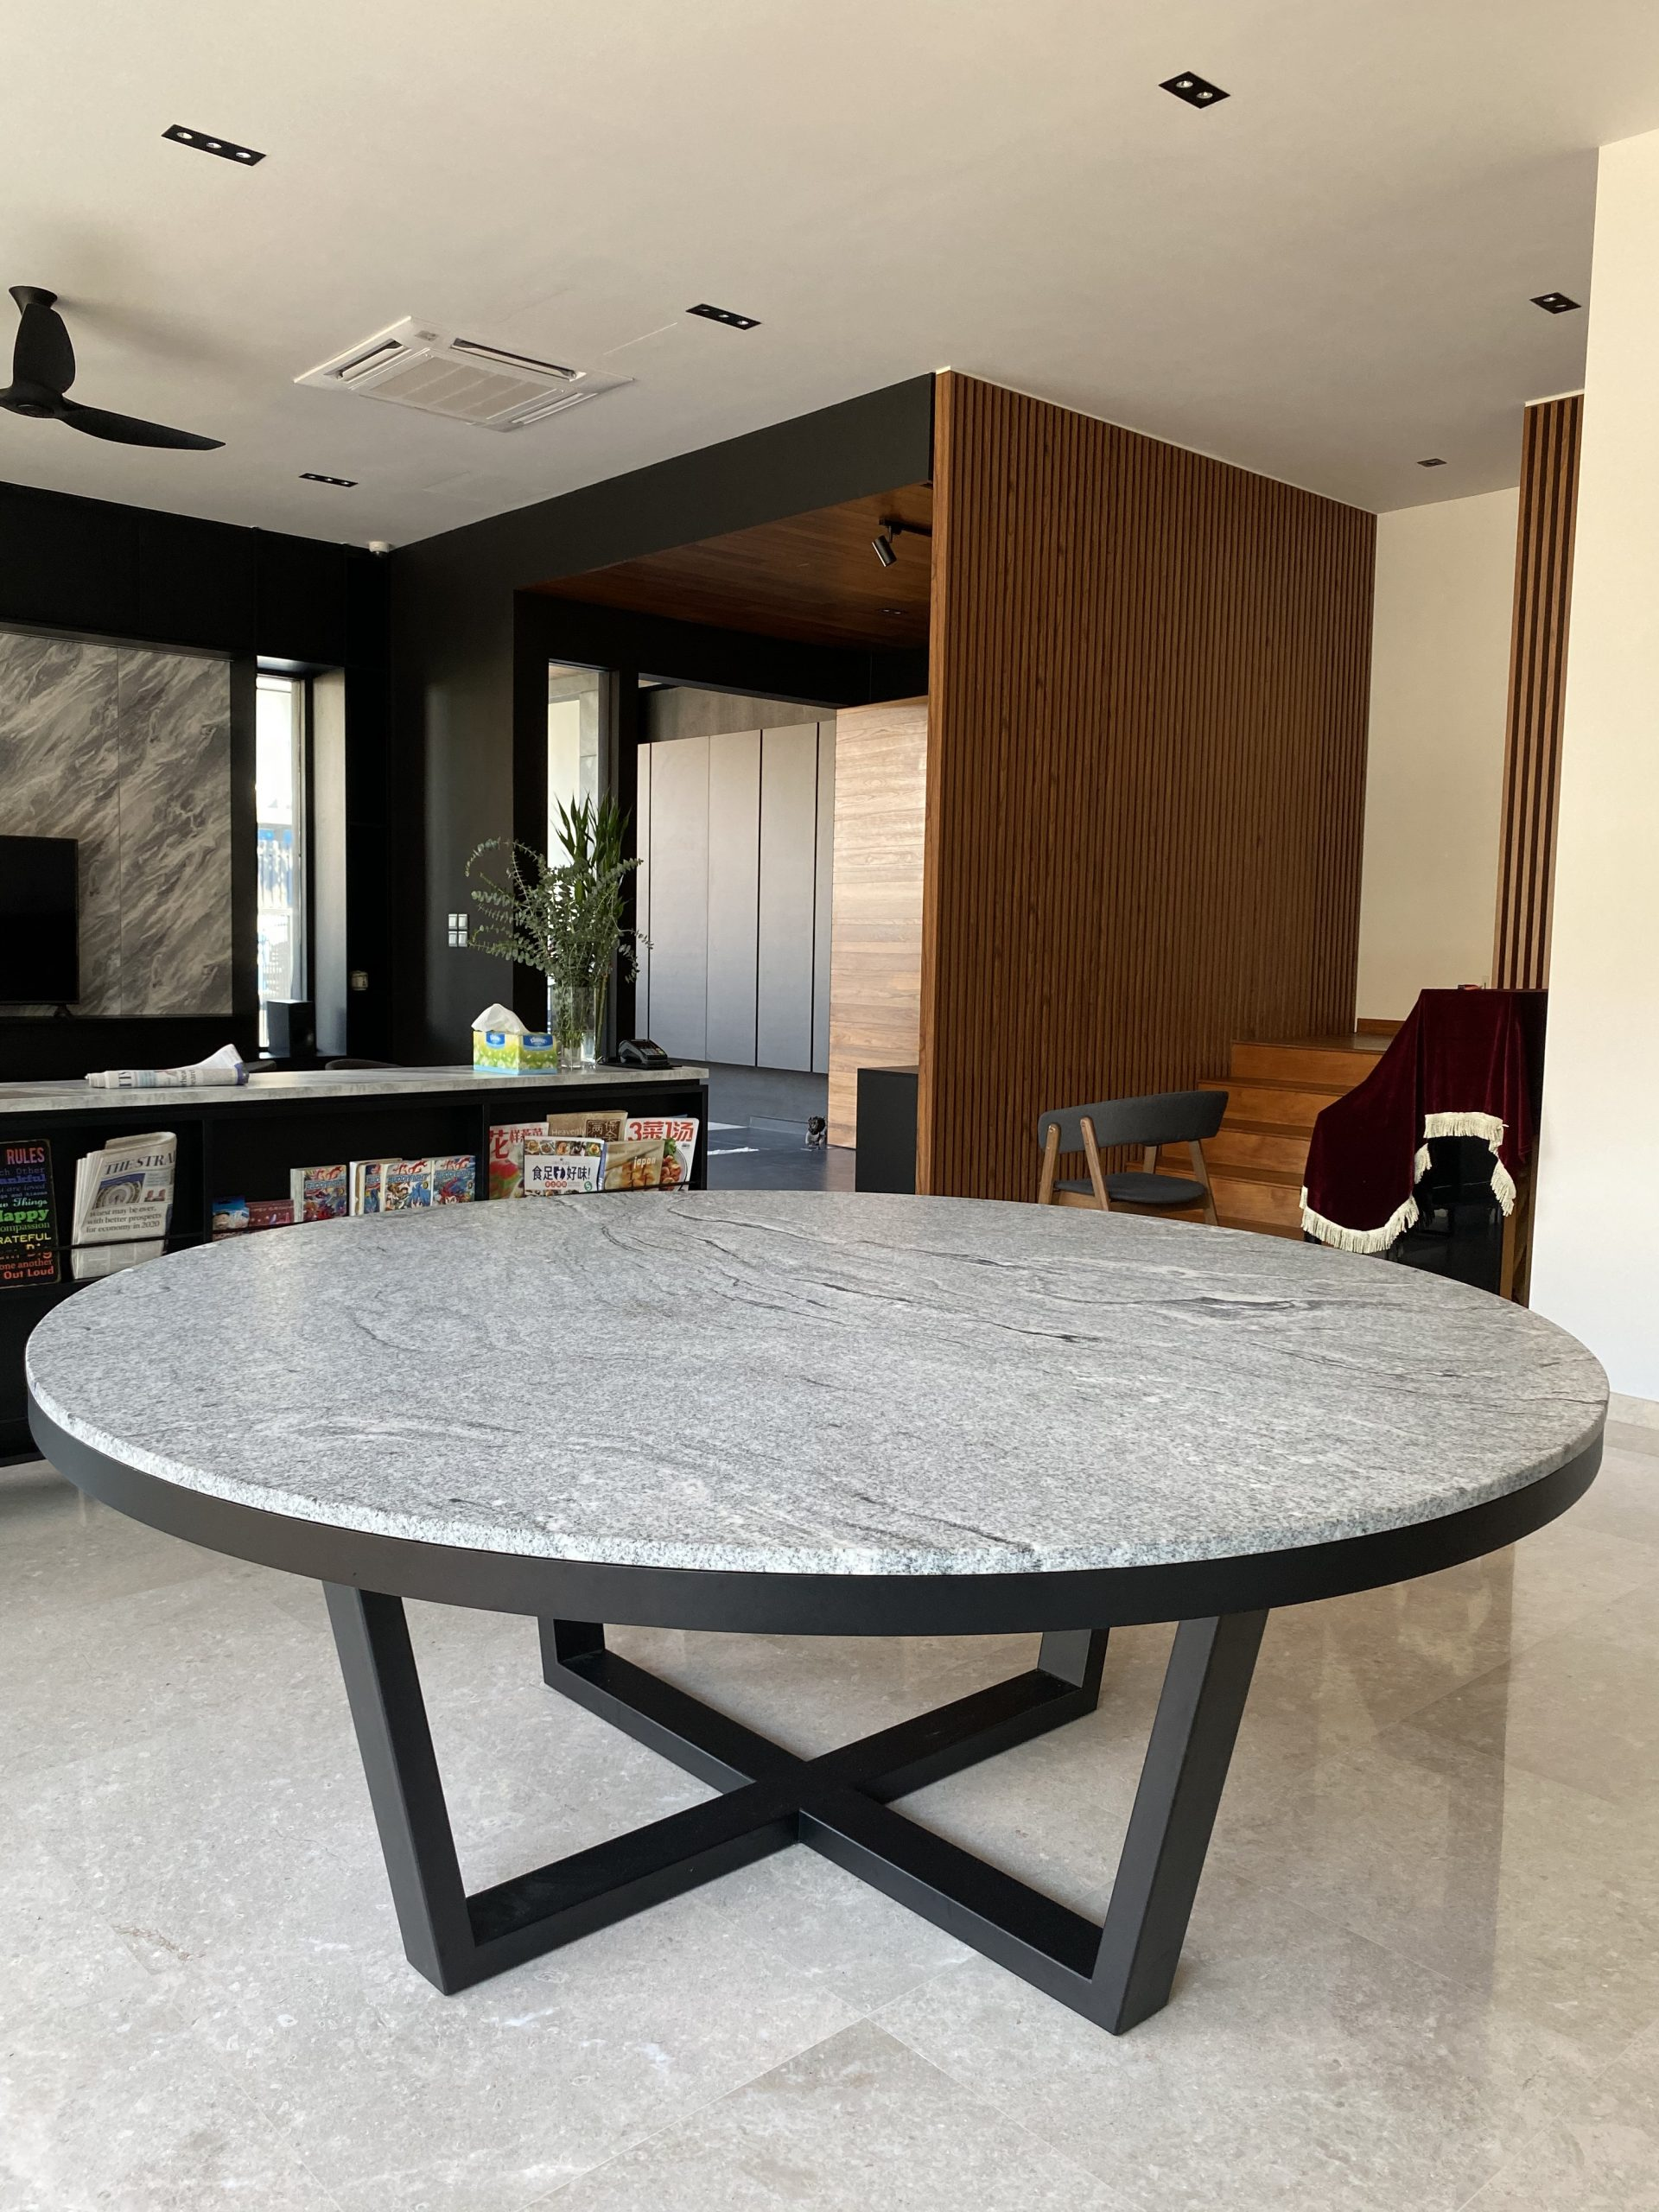 Dexter with Trimming Granite Dining Table